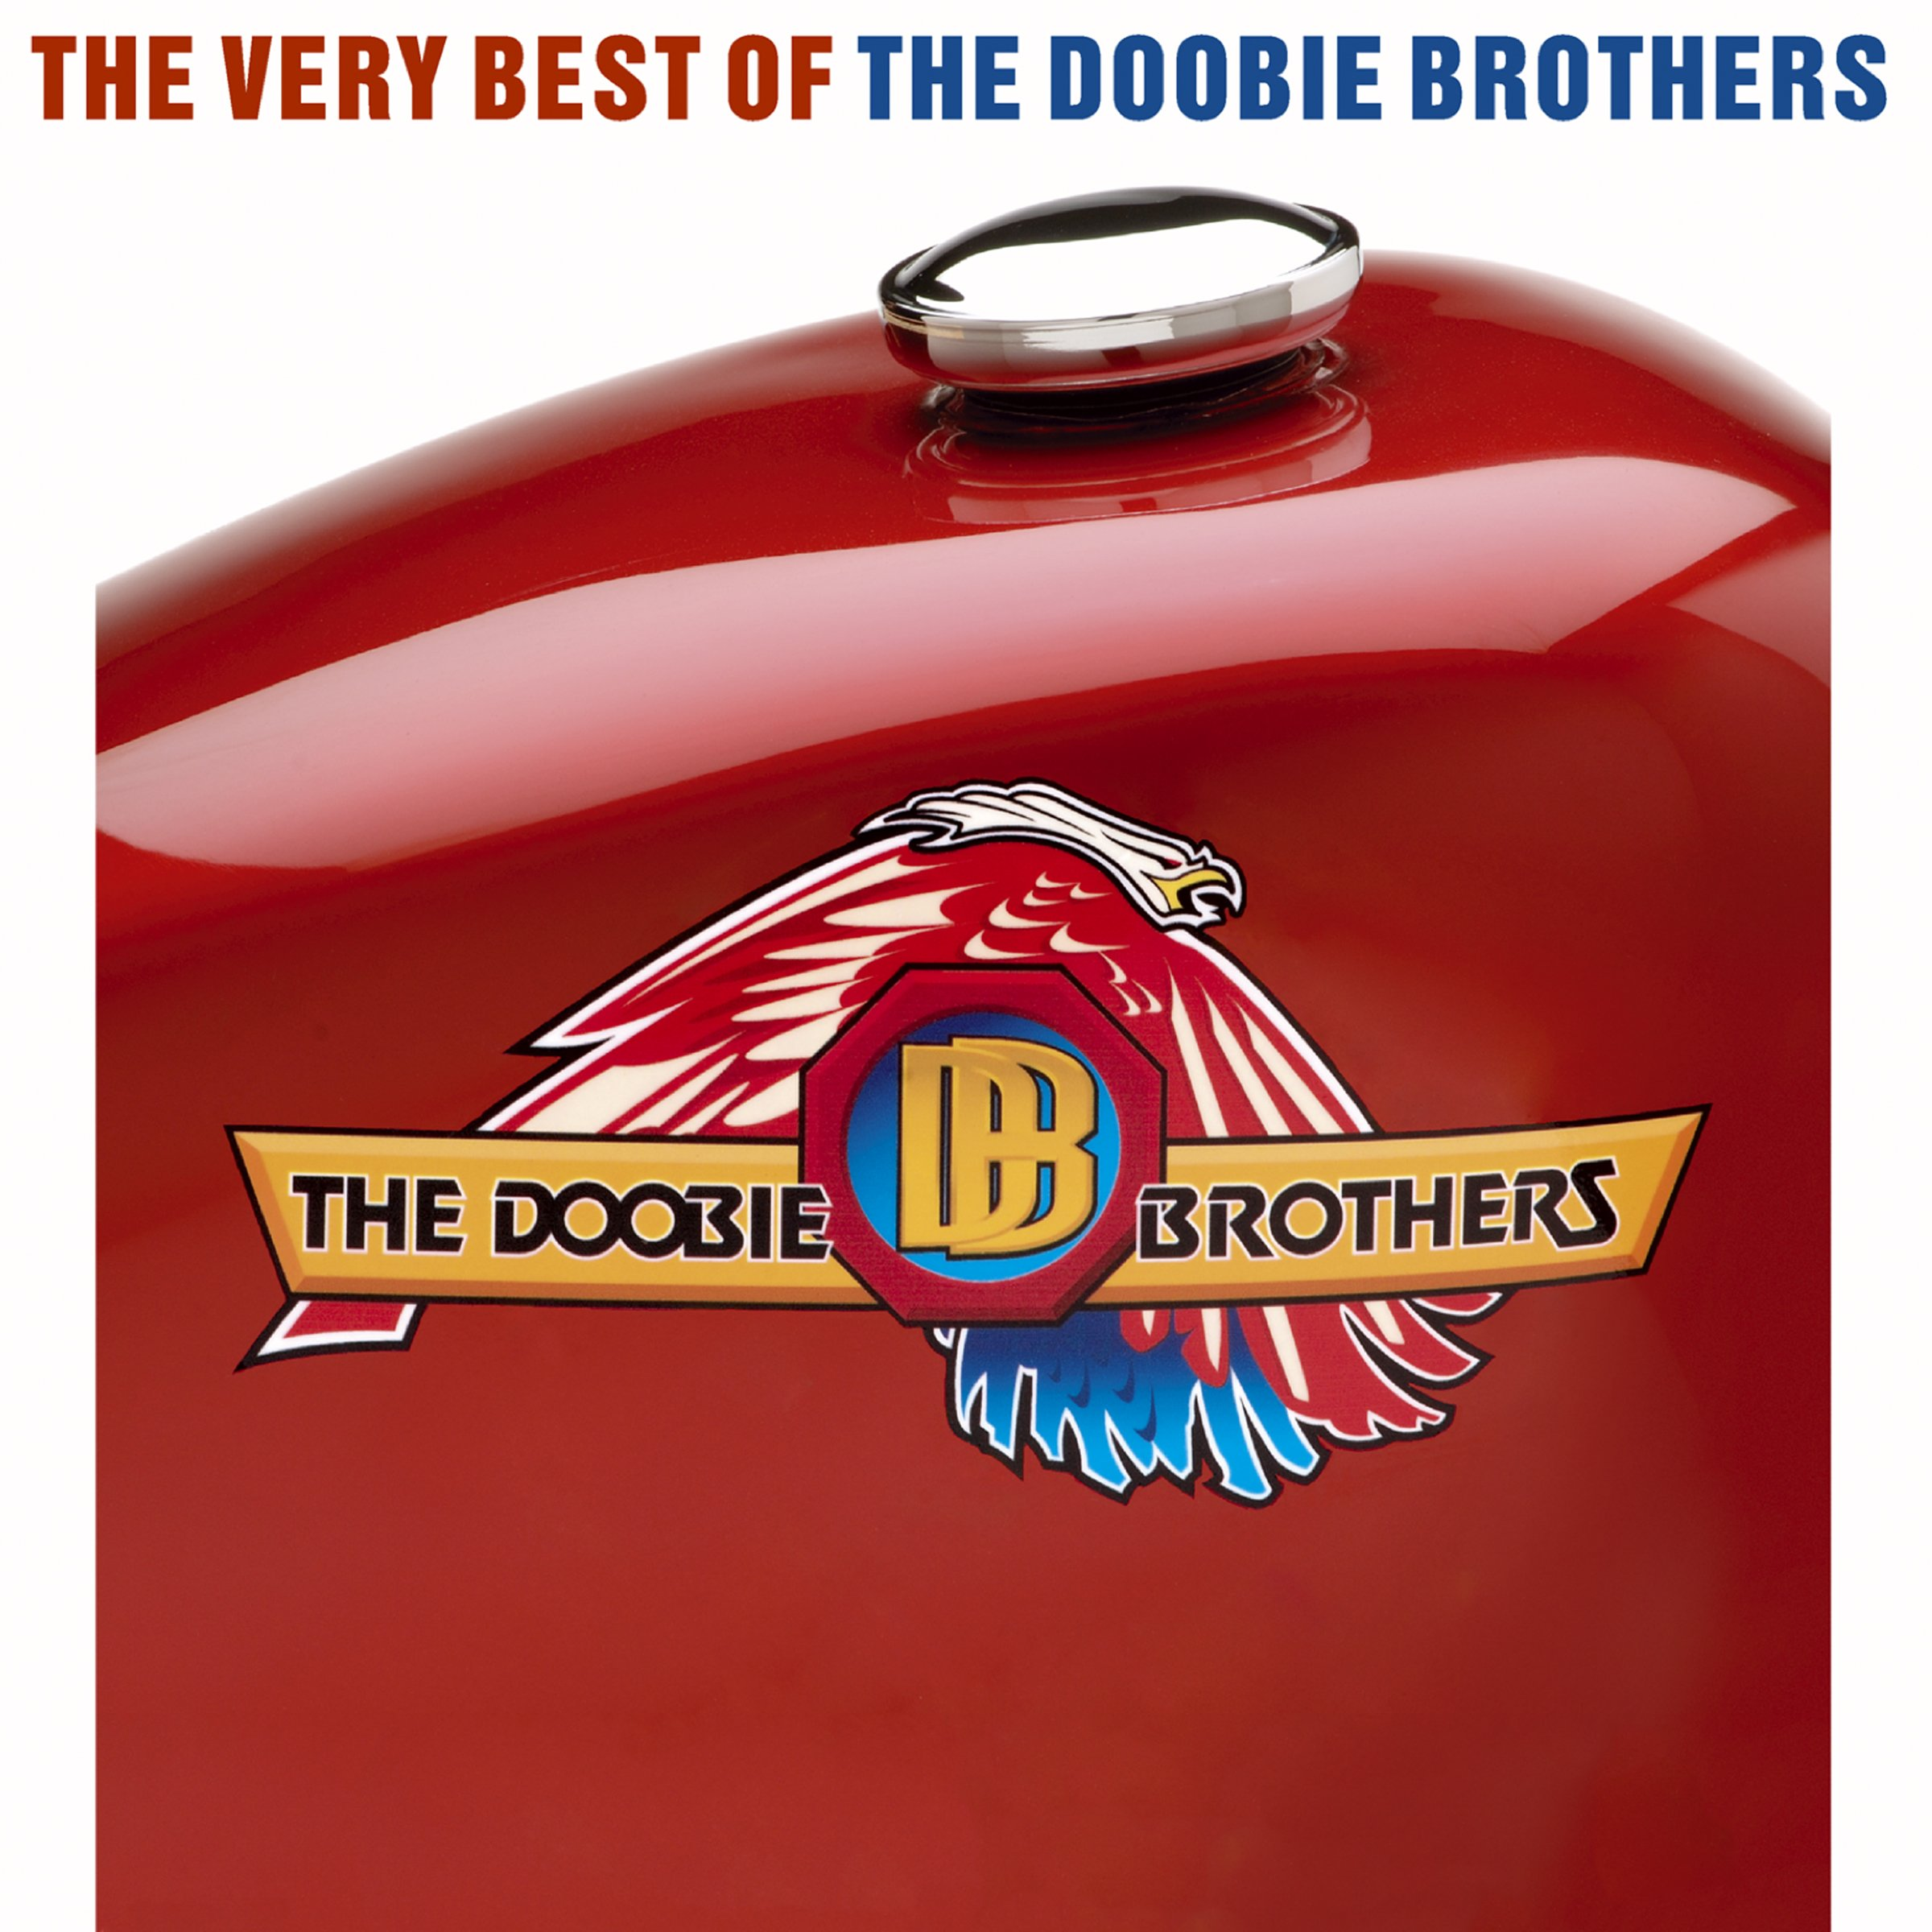 The Very Best of The Doobie Brothers by Rhino/Warner Bros.